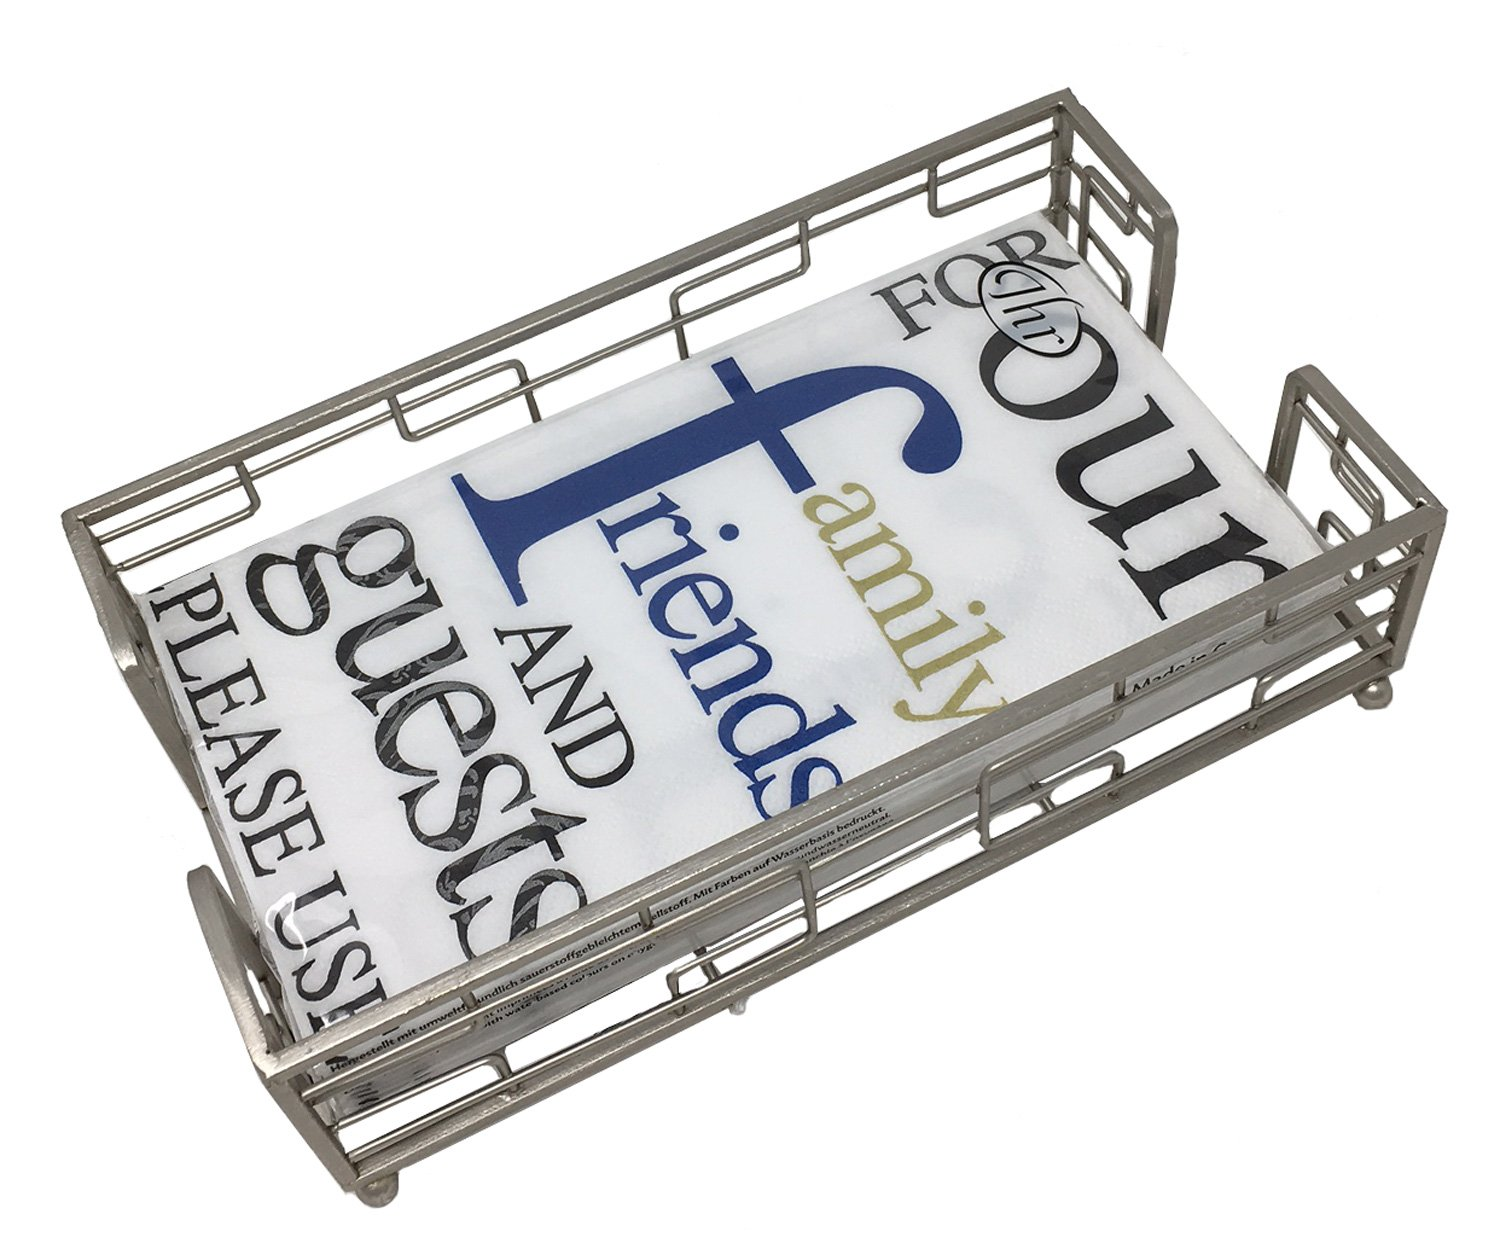 Ideal Home Range 3-Ply Paper Please Use, 16 Count Guest Towel Napkins Blue with Boston International Hampshire Brushed Nickel Metal Caddy